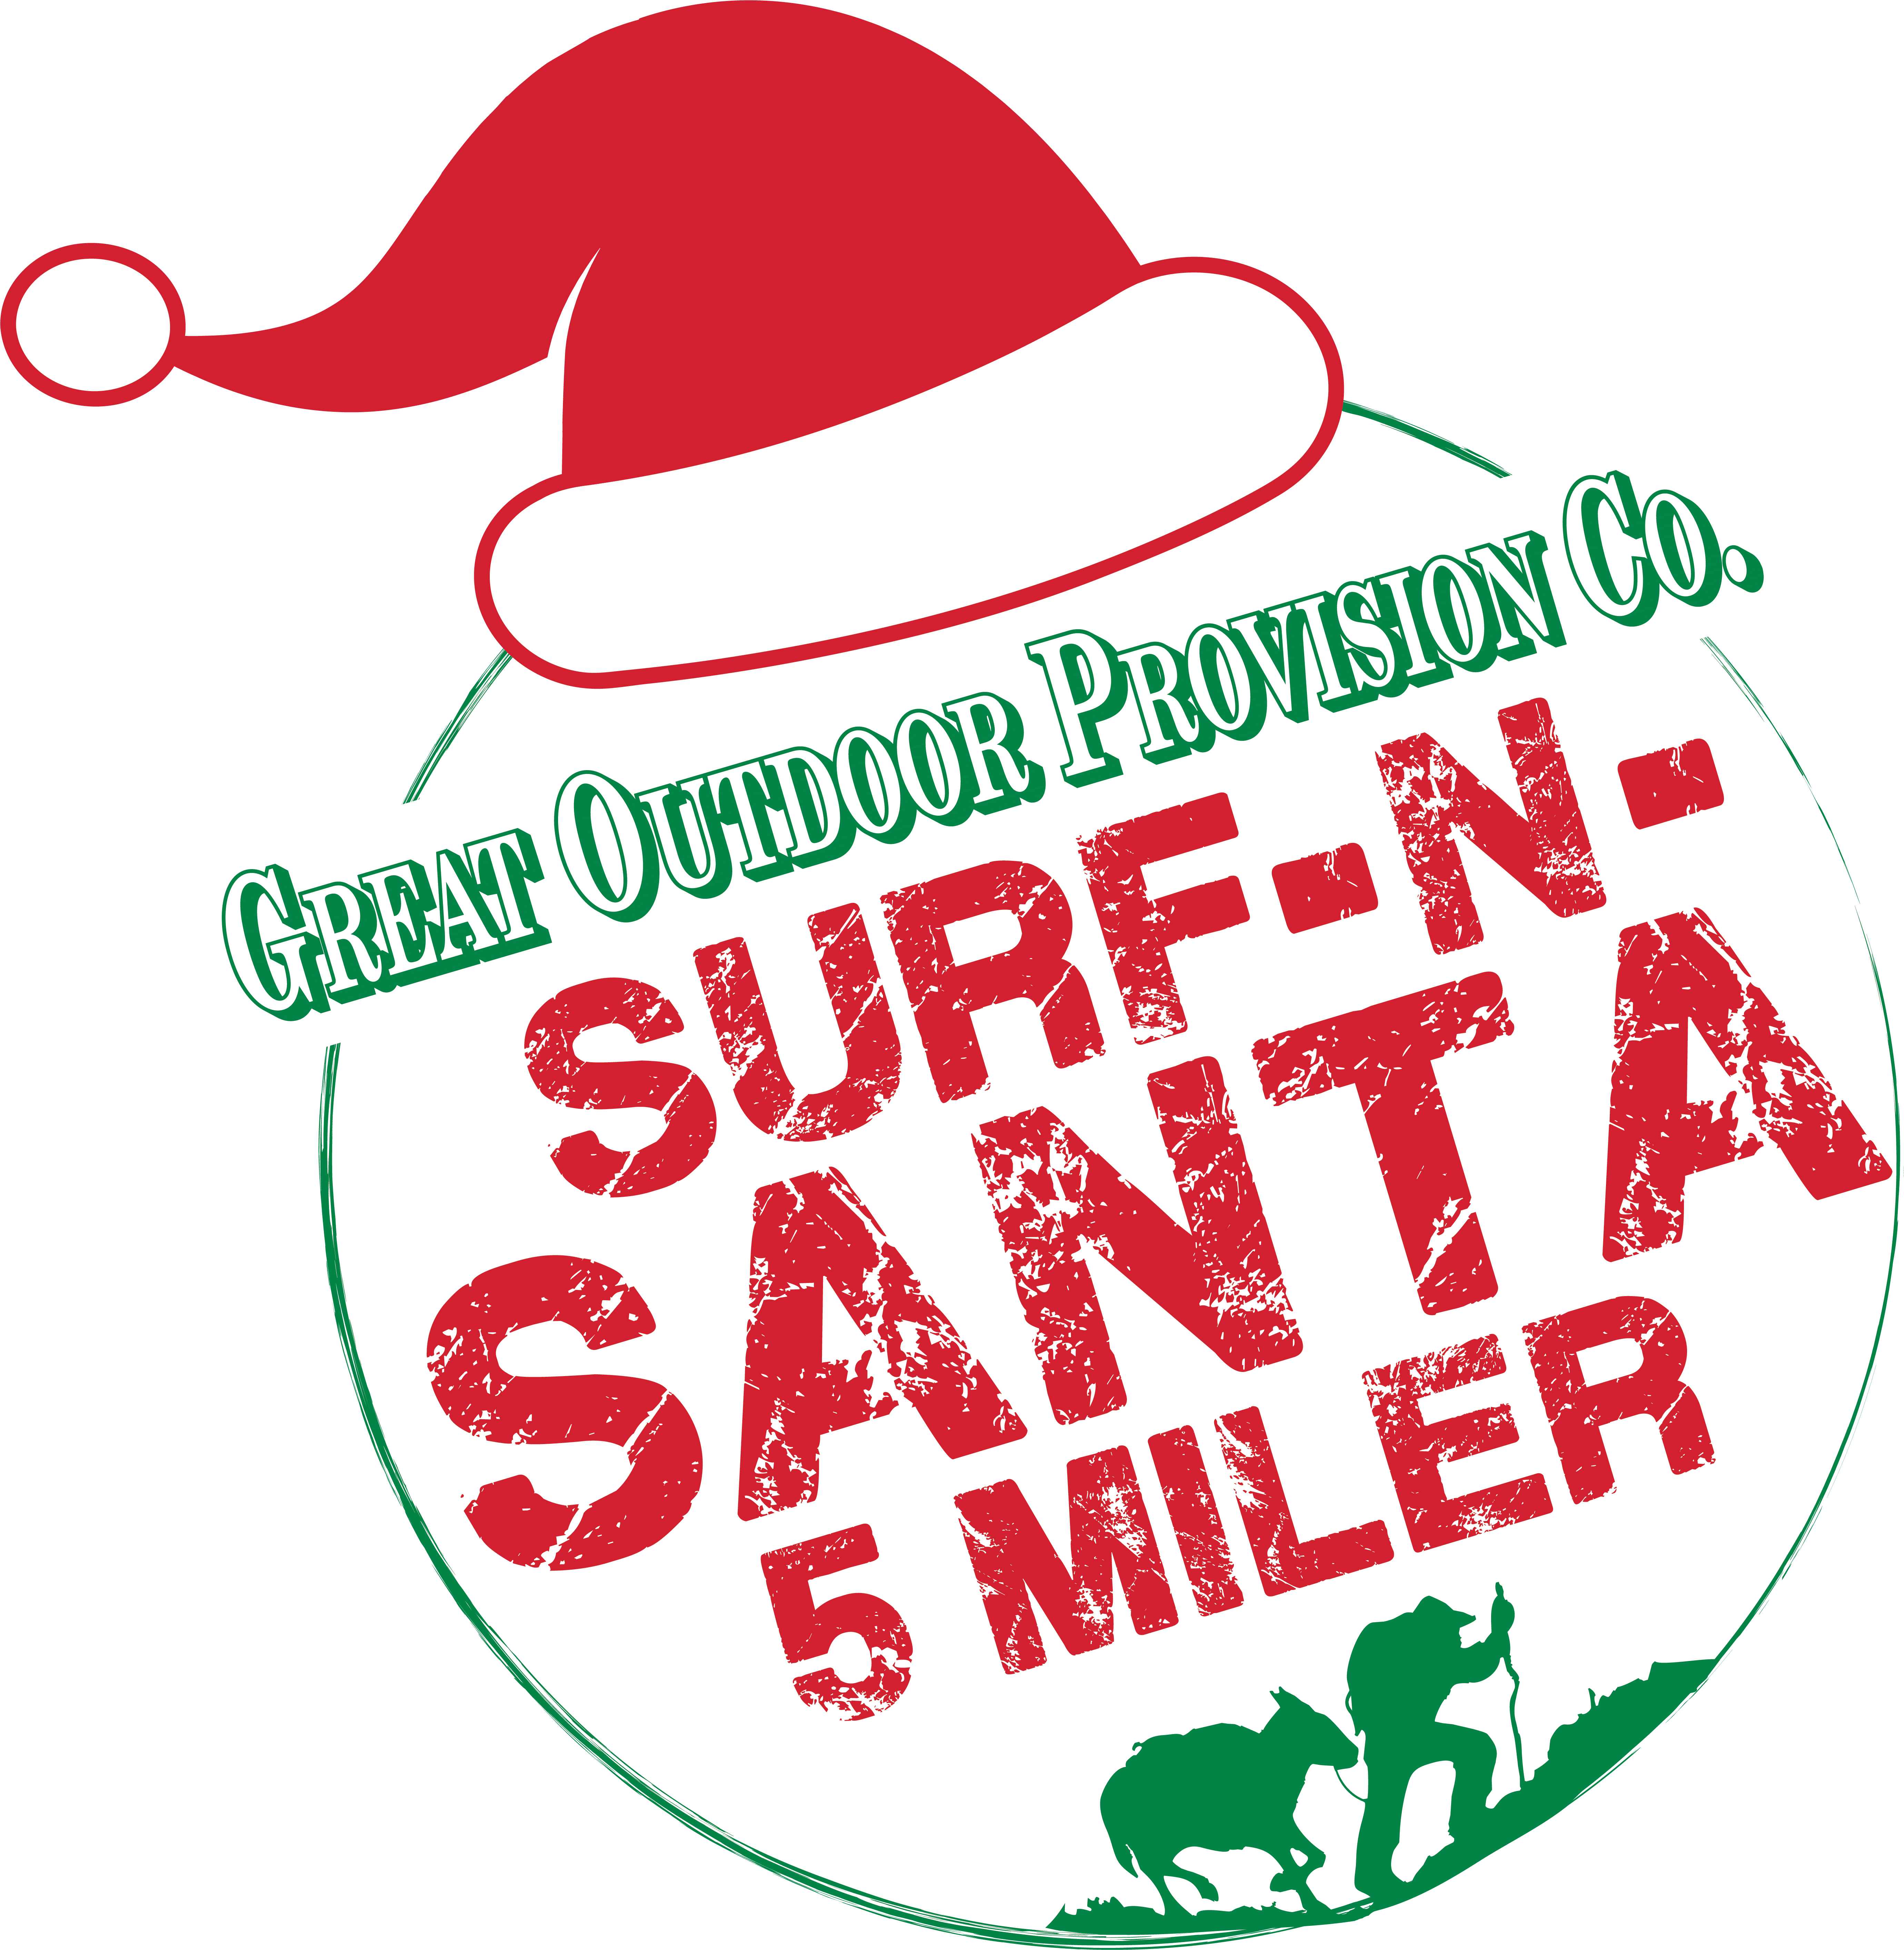 The Great Outdoor Provision Co. Surf-N-Santa 5 Miler presented by Bon Secours In Motion Logo